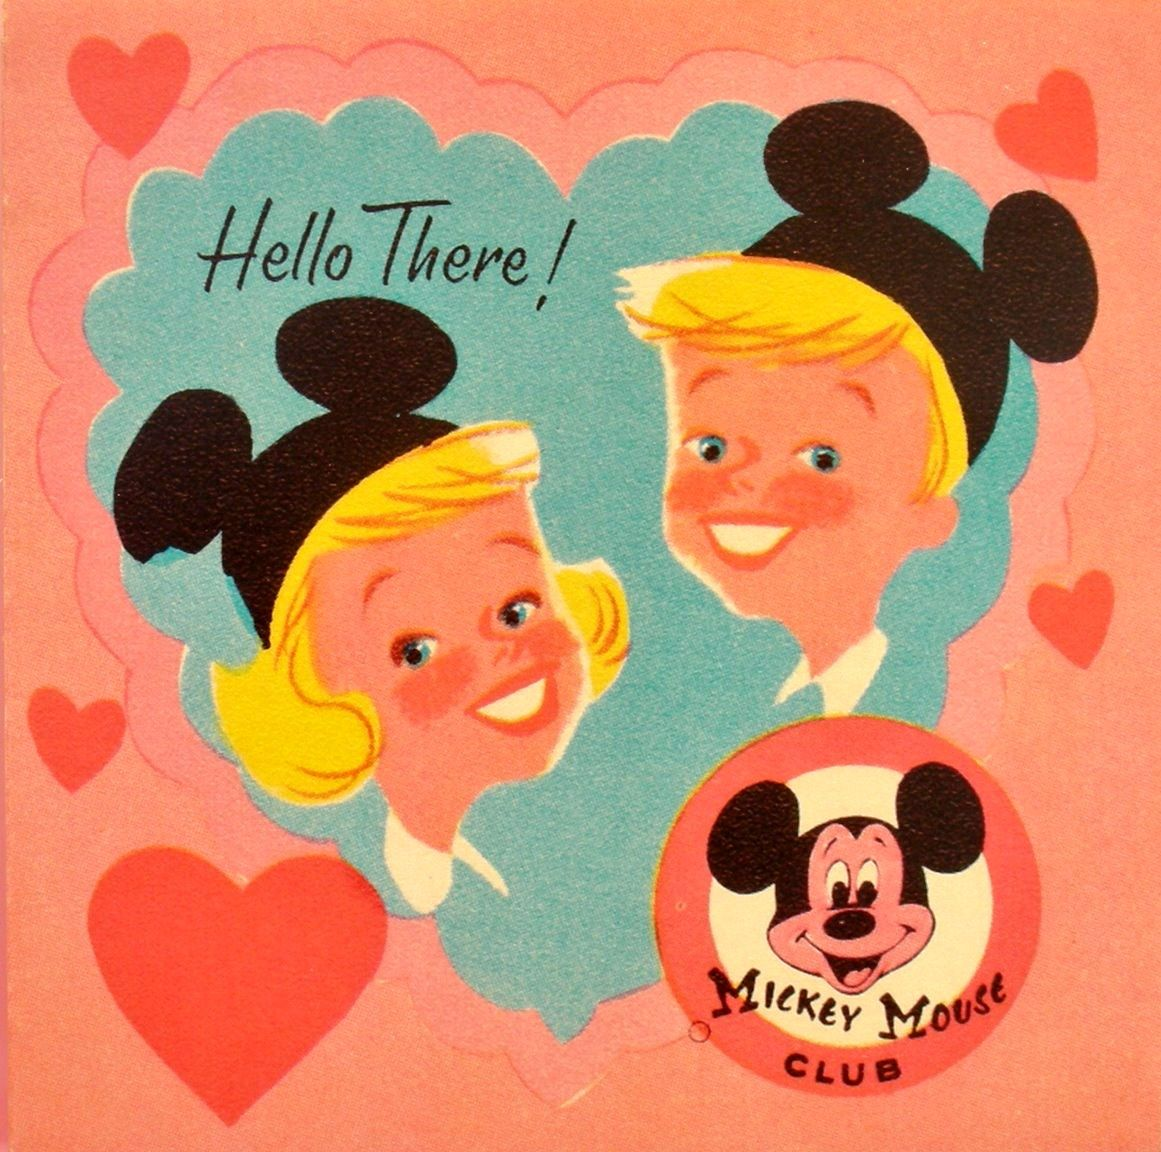 25 vintage valentines day cards that will melt your heart photos